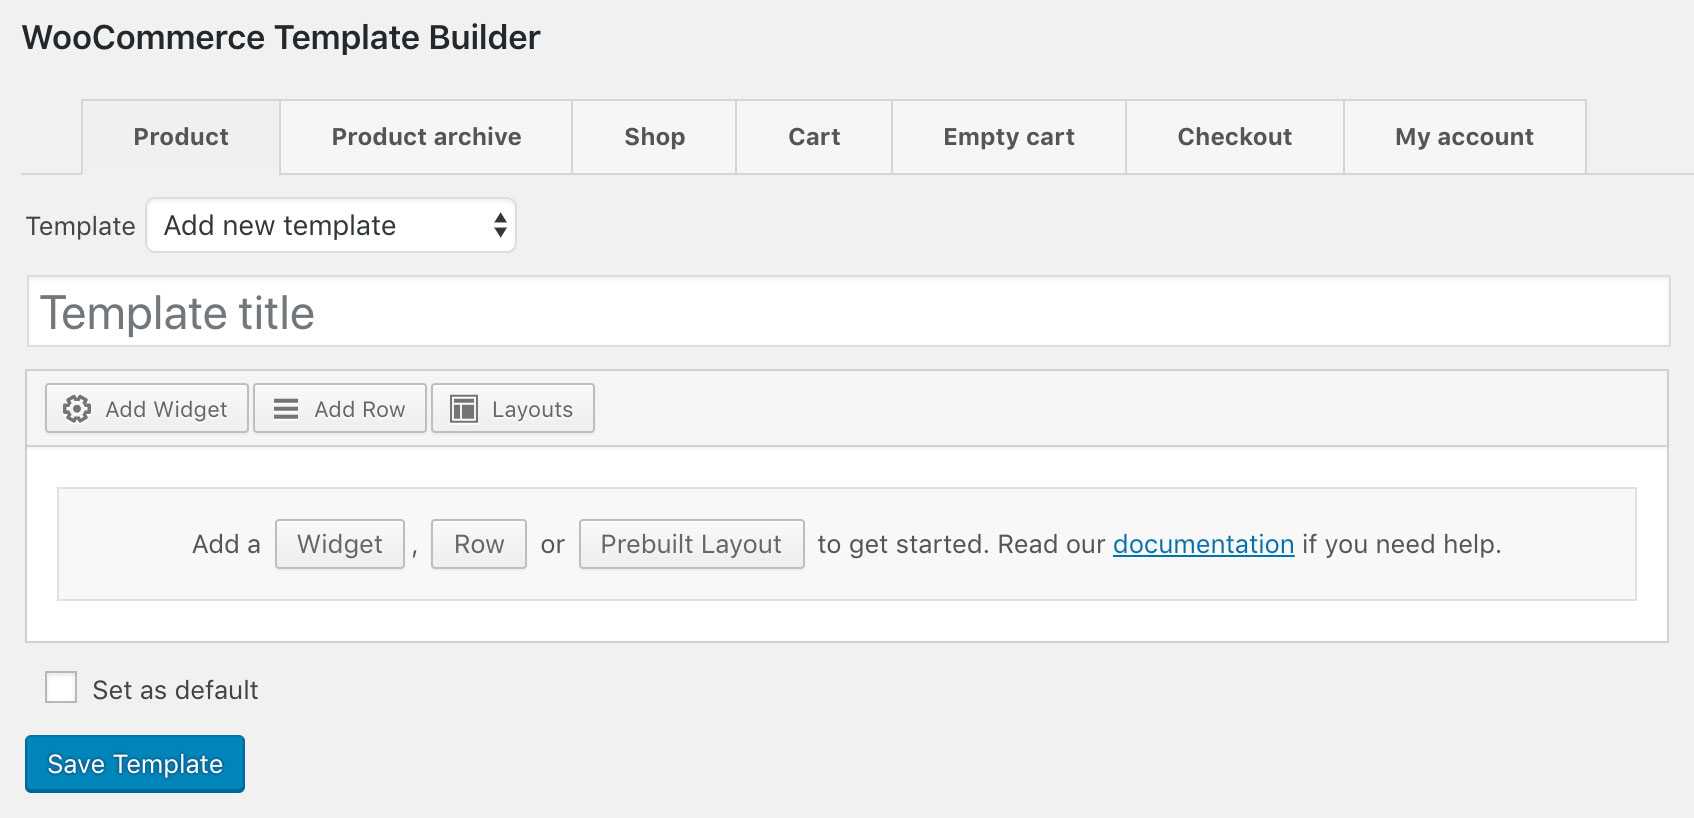 WooCommerce Template Builder Interface